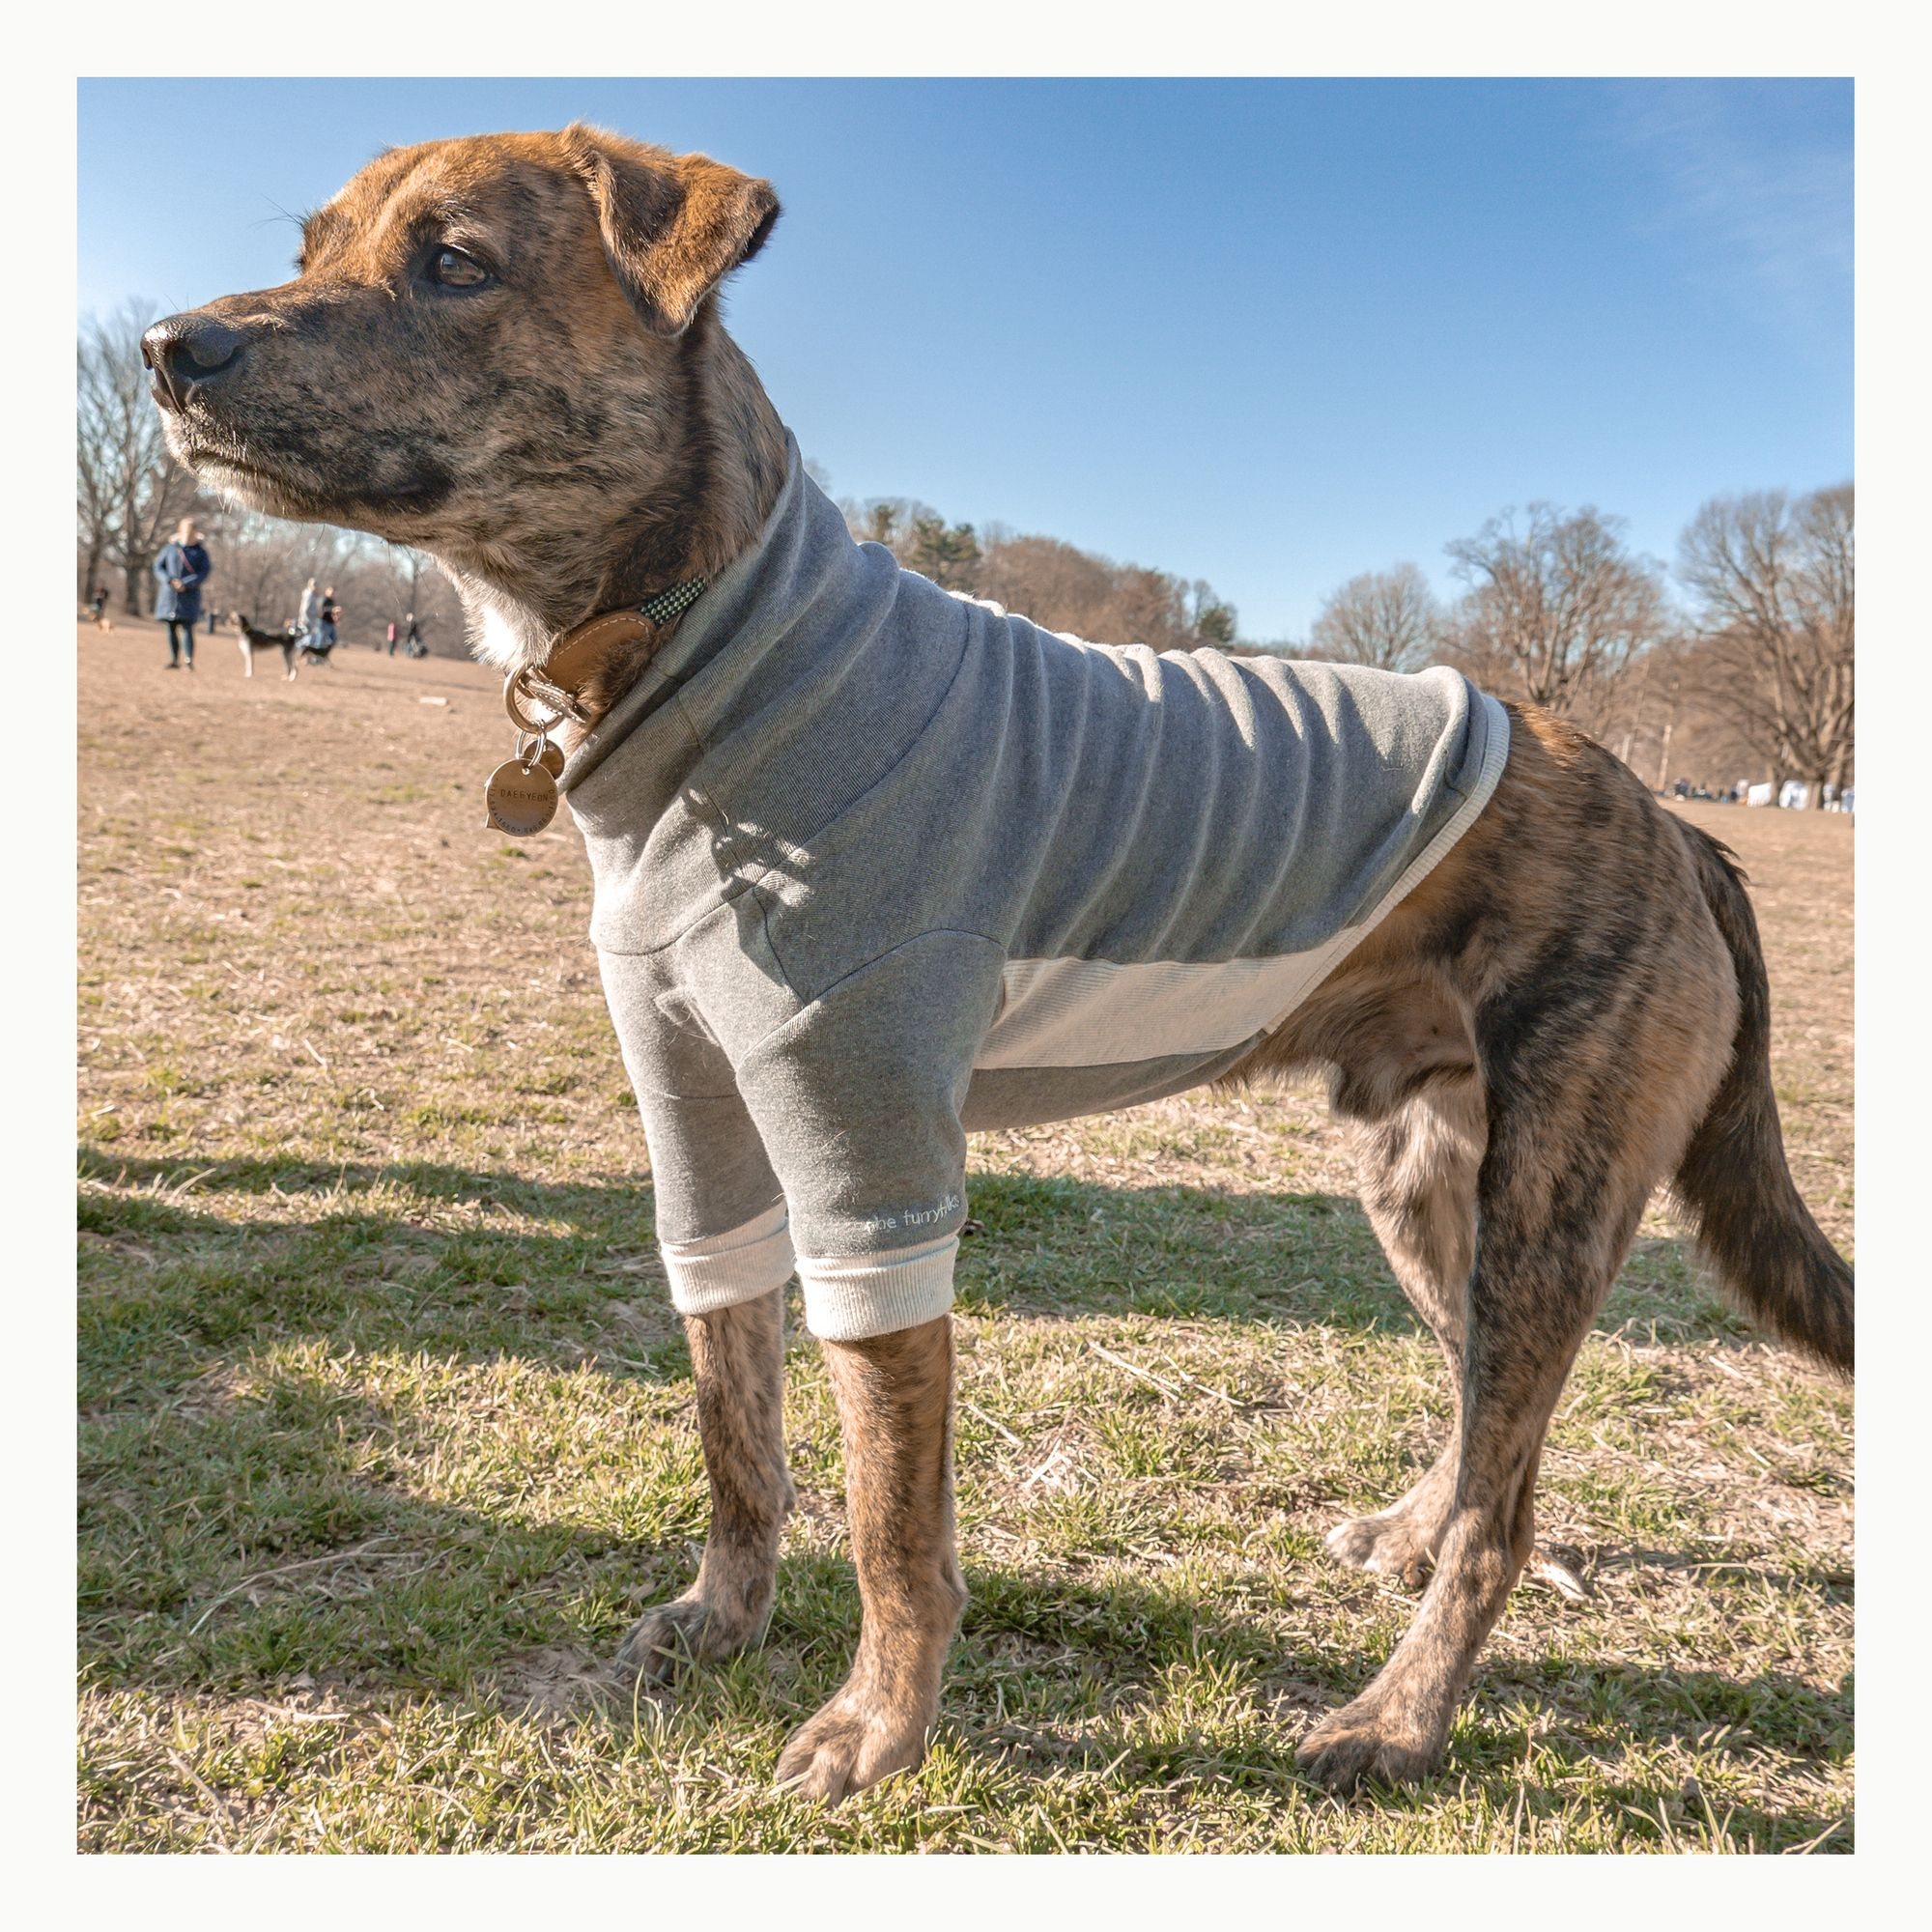 Best Seller Throughout The Year The Furryfolks High Neck Dog Tee Super Soft And Stretch With Meticulous Details For Th In 2020 Dogs Tee Animal Companions Dogs